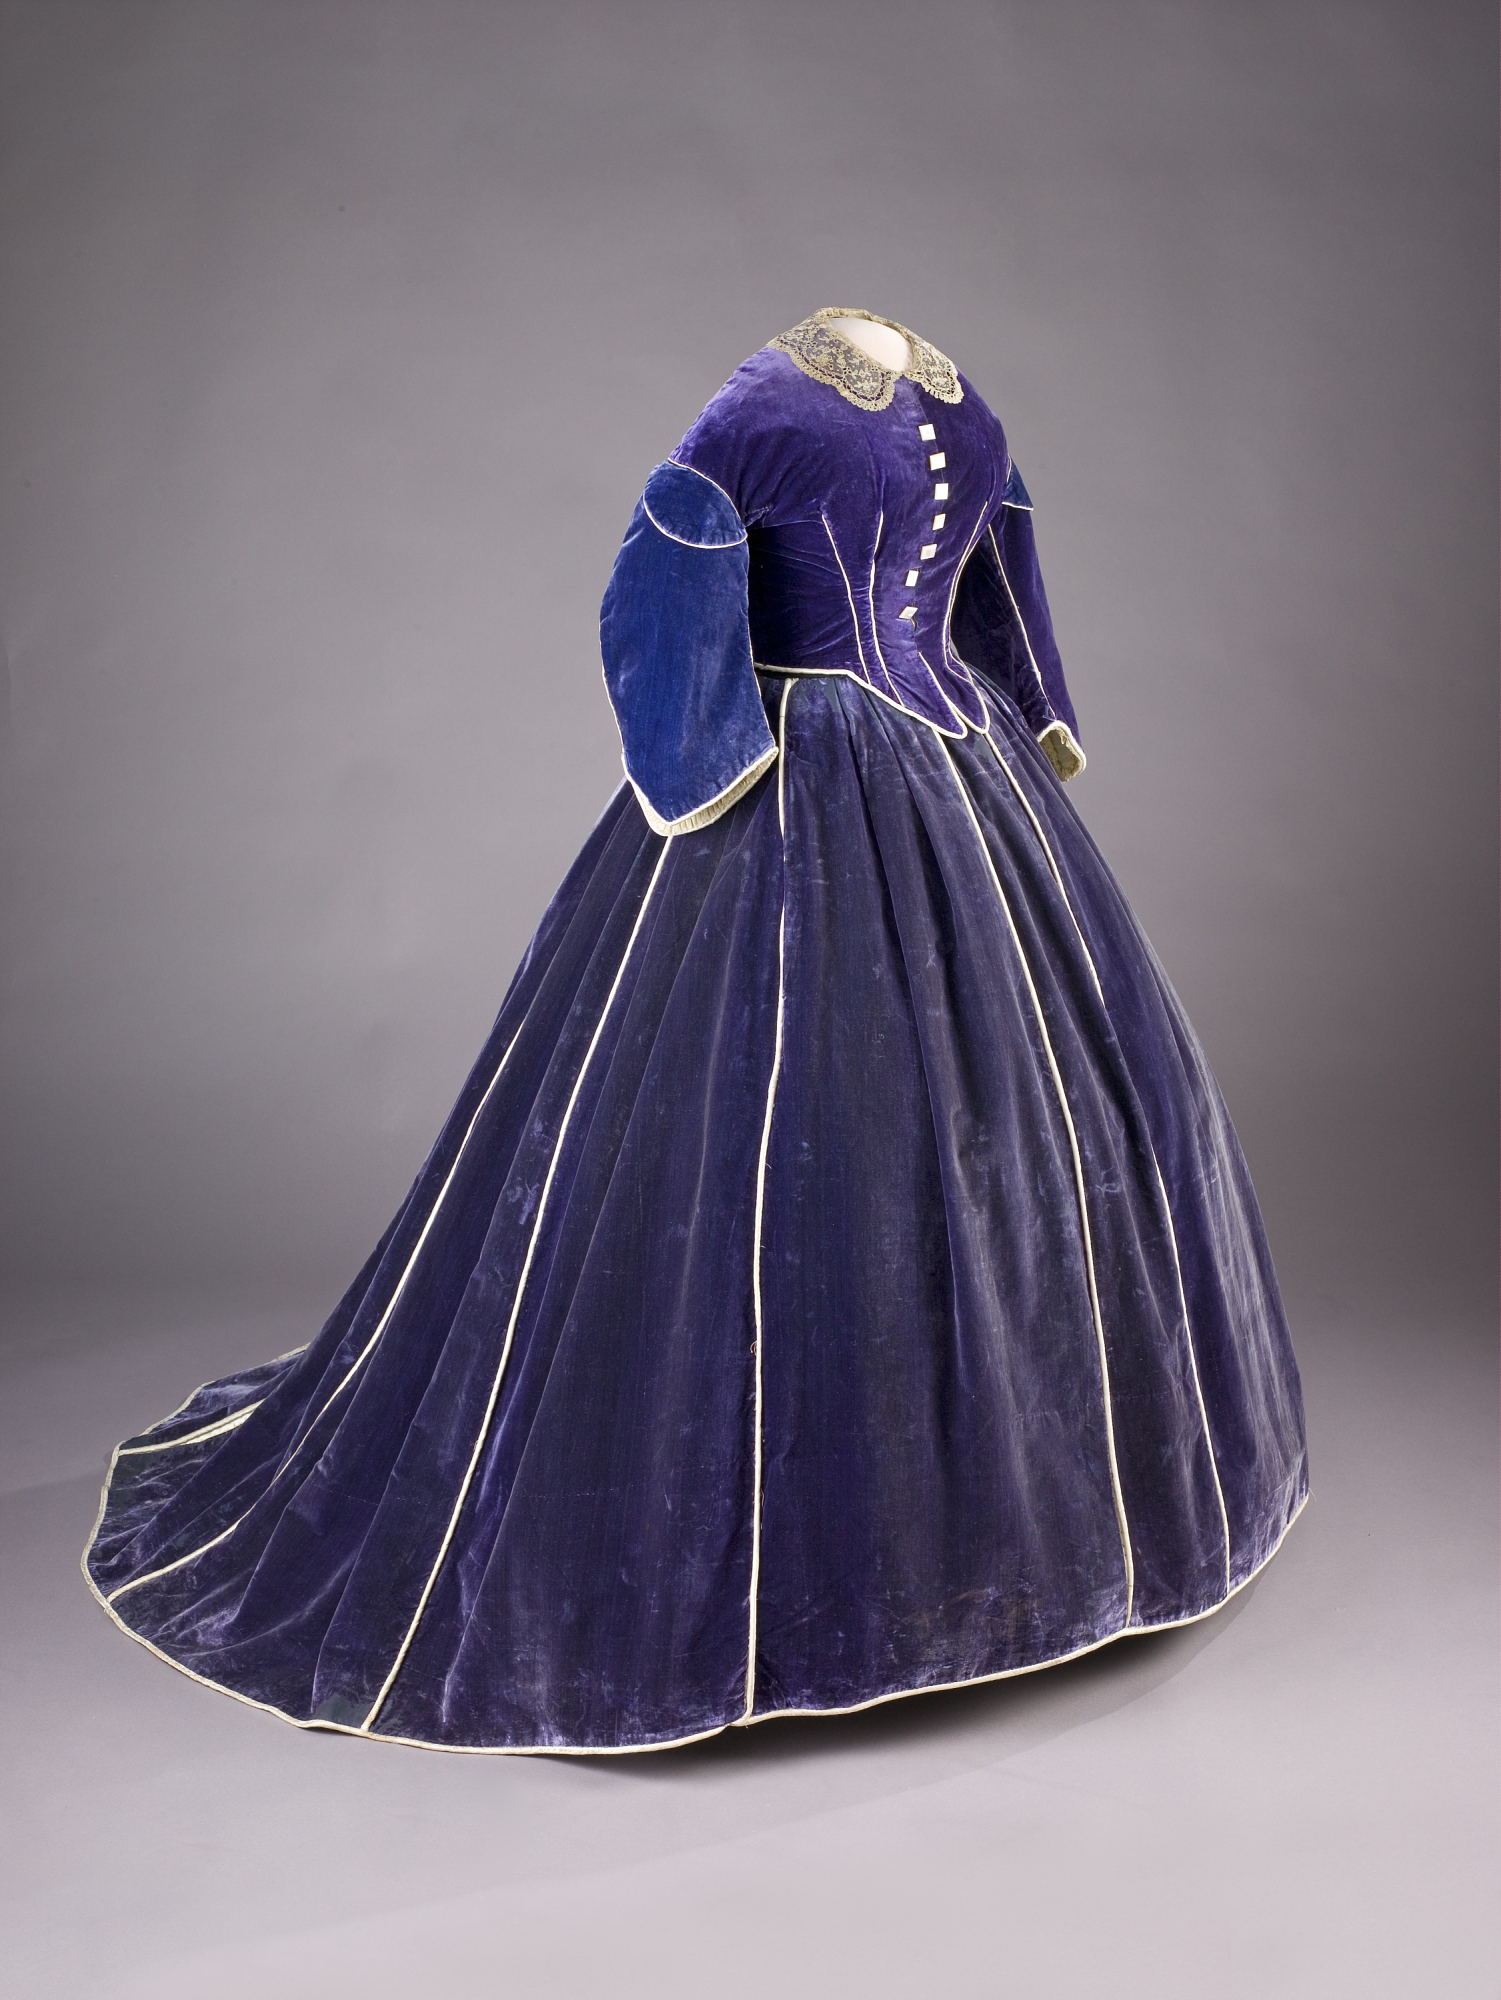 A beautiful purple velvet dress with an overcoat, most certainly made by Lizzie Keckley. I saw this on display, once, at the National Museum of American History! Very cool, and still in good shape considering. If only we had been as interested in First Lady fashions when Mary tried to sell all of her old gowns.   National Museum of American History